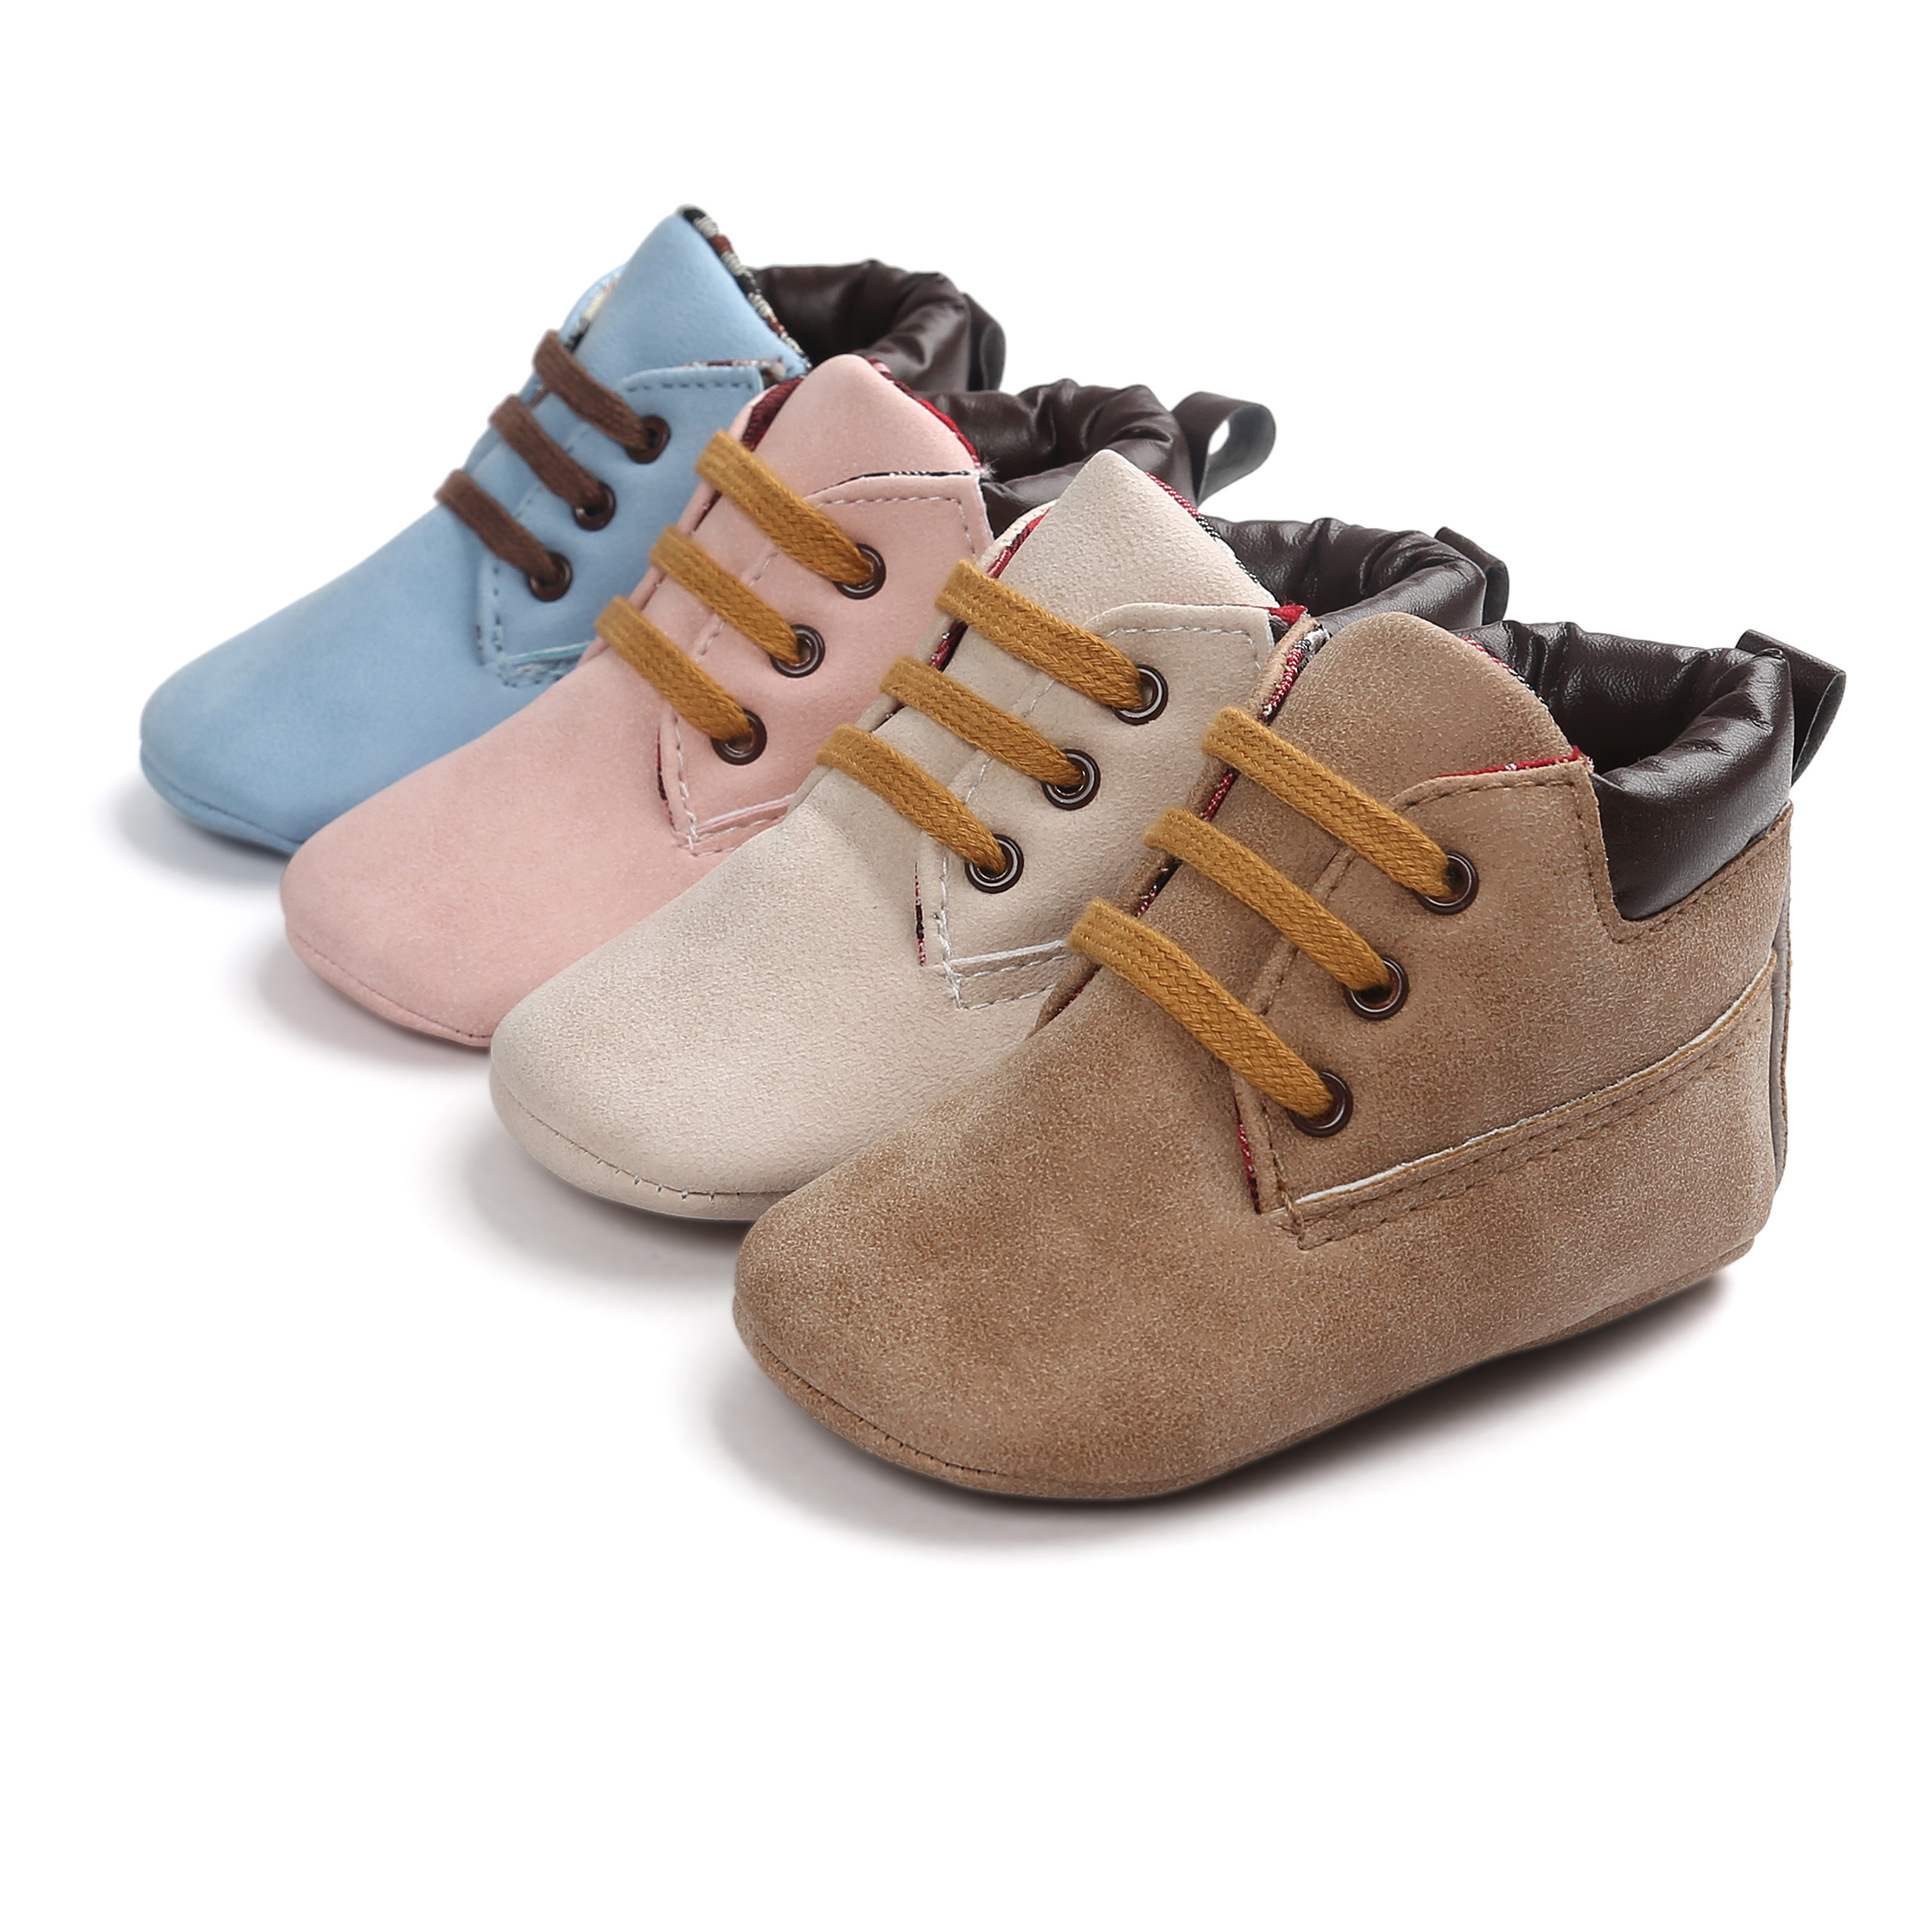 ROMIRUS Baby First Walkers Baby Shoes Soft Bottom Fashion Tassels